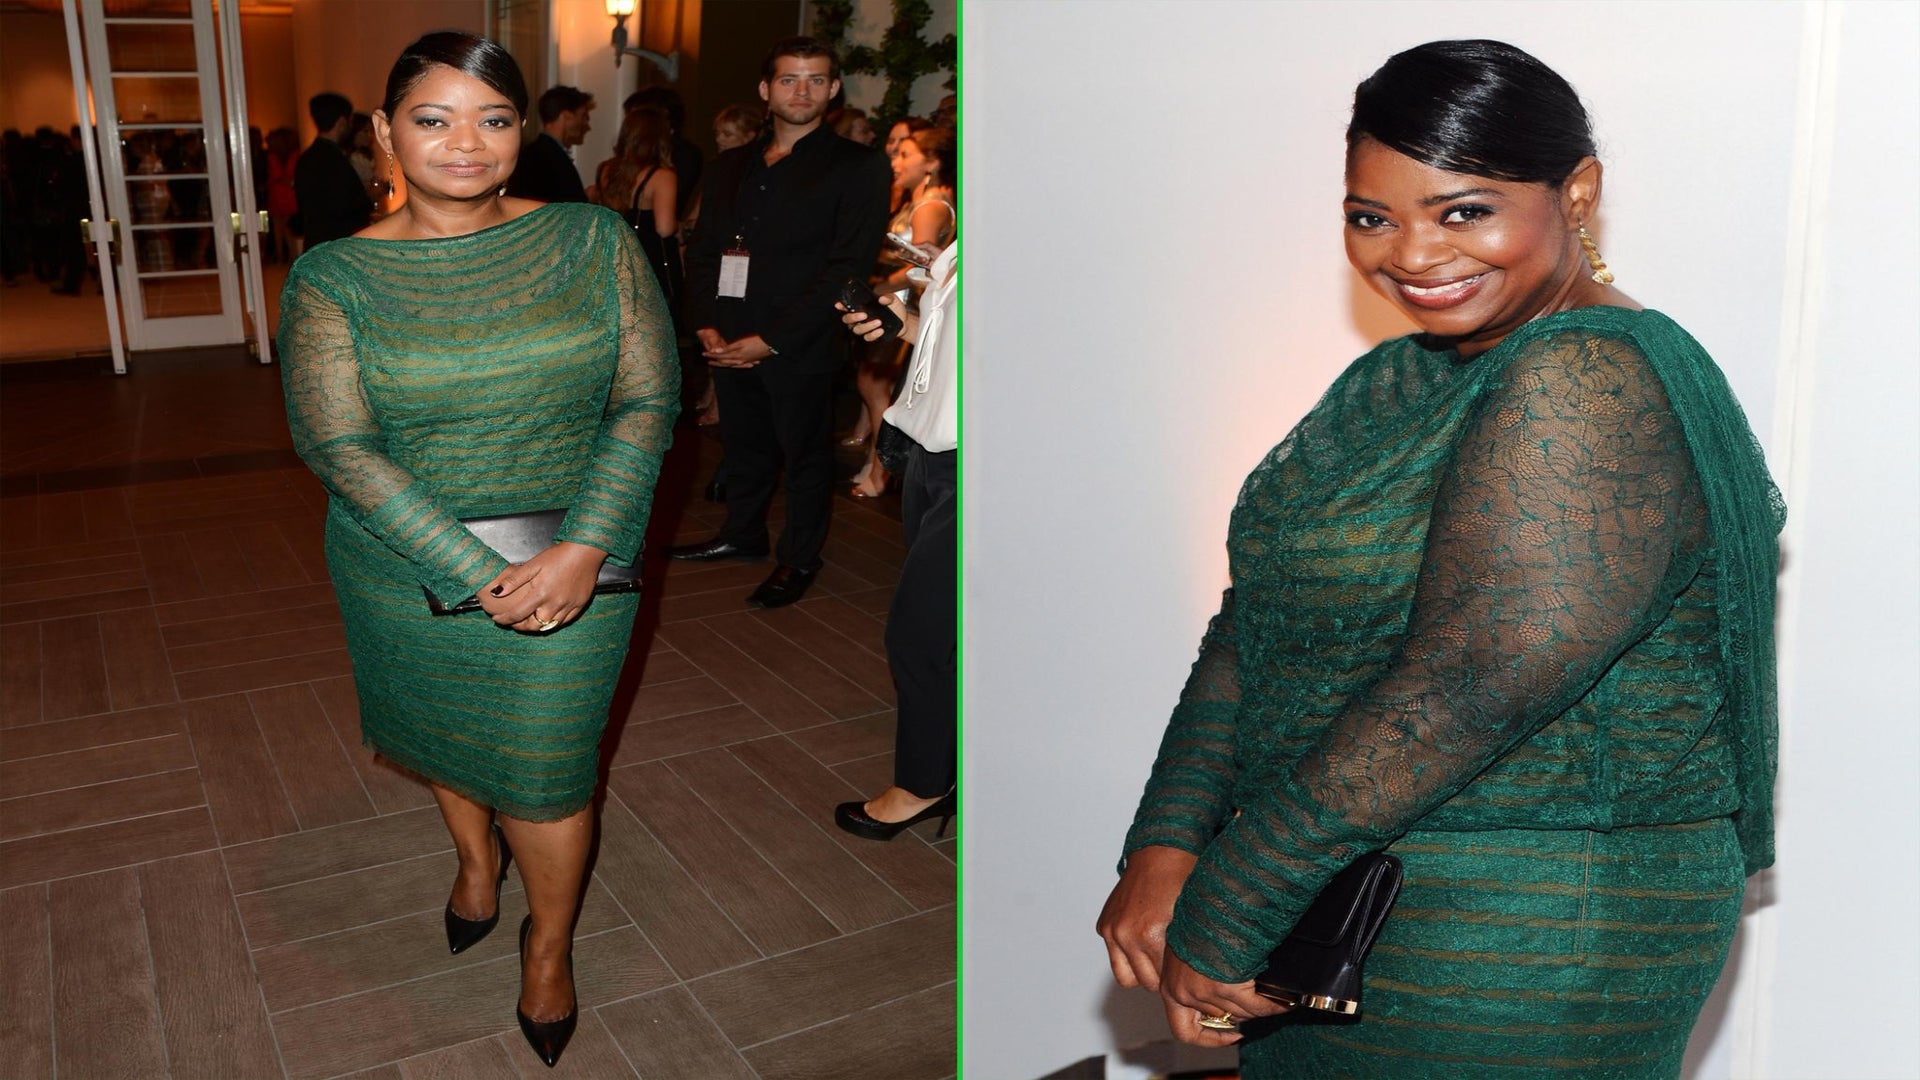 Octavia Spencer To Star in New TV Drama, 'Red Band Society'